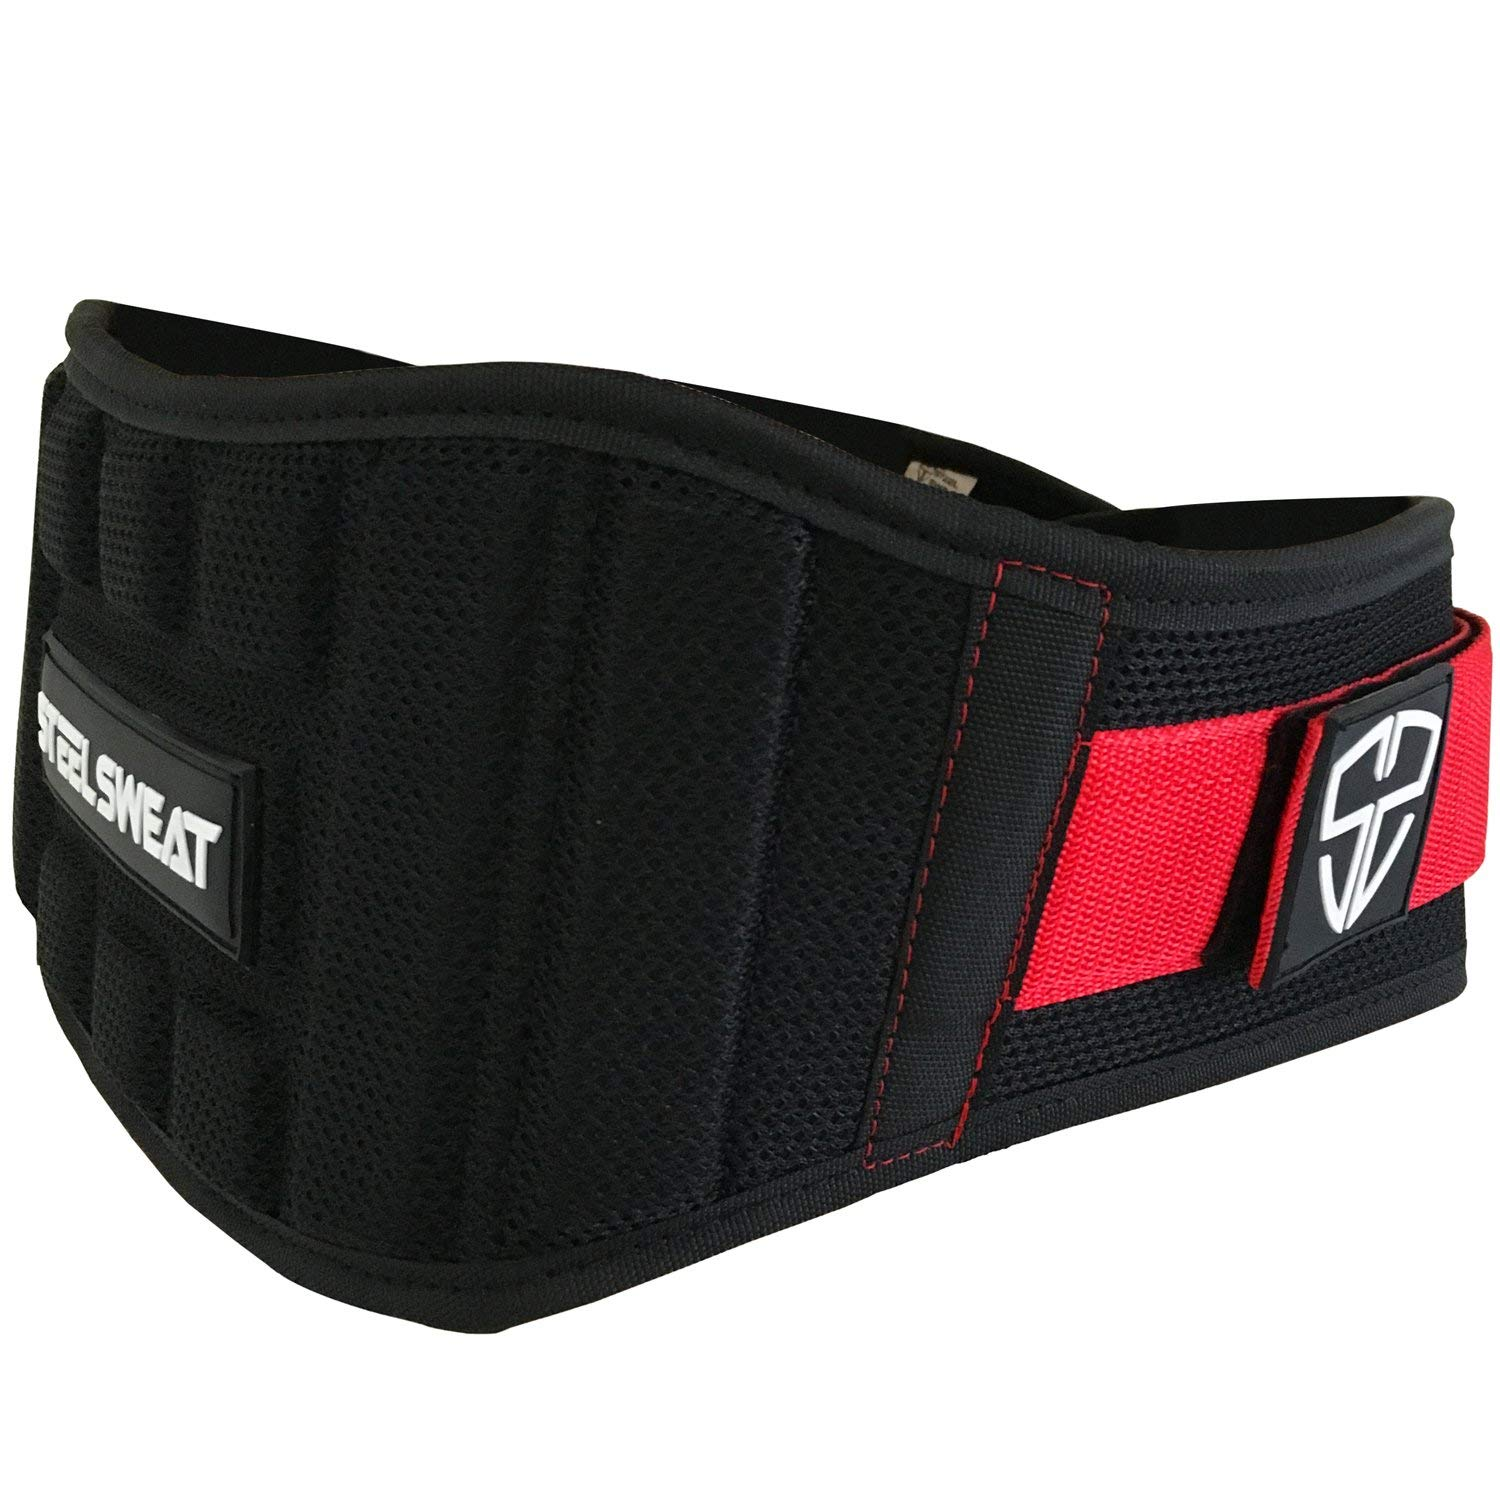 Steel Sweat Weight Lifting Belt - Nylon 6-inch Firm & Comfortable Back Support, Best for Workouts at The Gym, Weightlifting or Crossfit. Easily Adjustable Viper Redback Large